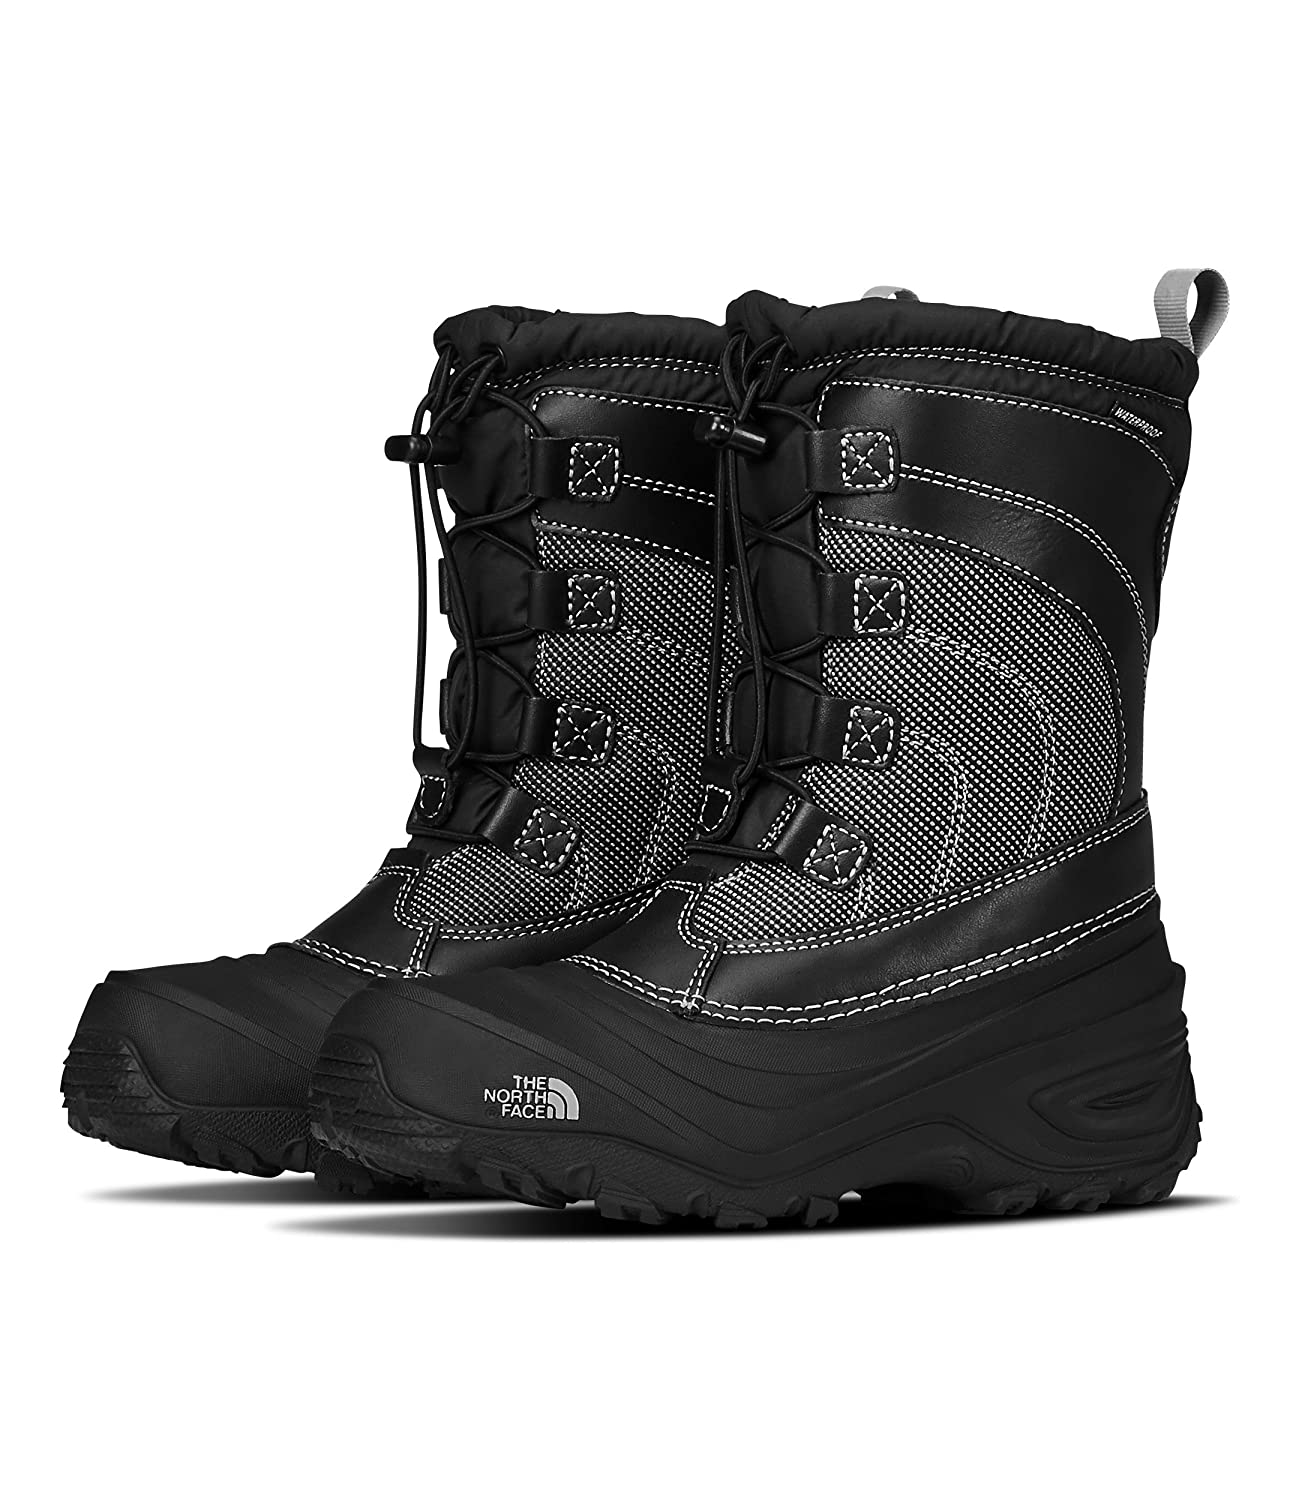 The North Face Alpenglow Iv B019NFXFK4 120|Tnf Black & Tnf Black